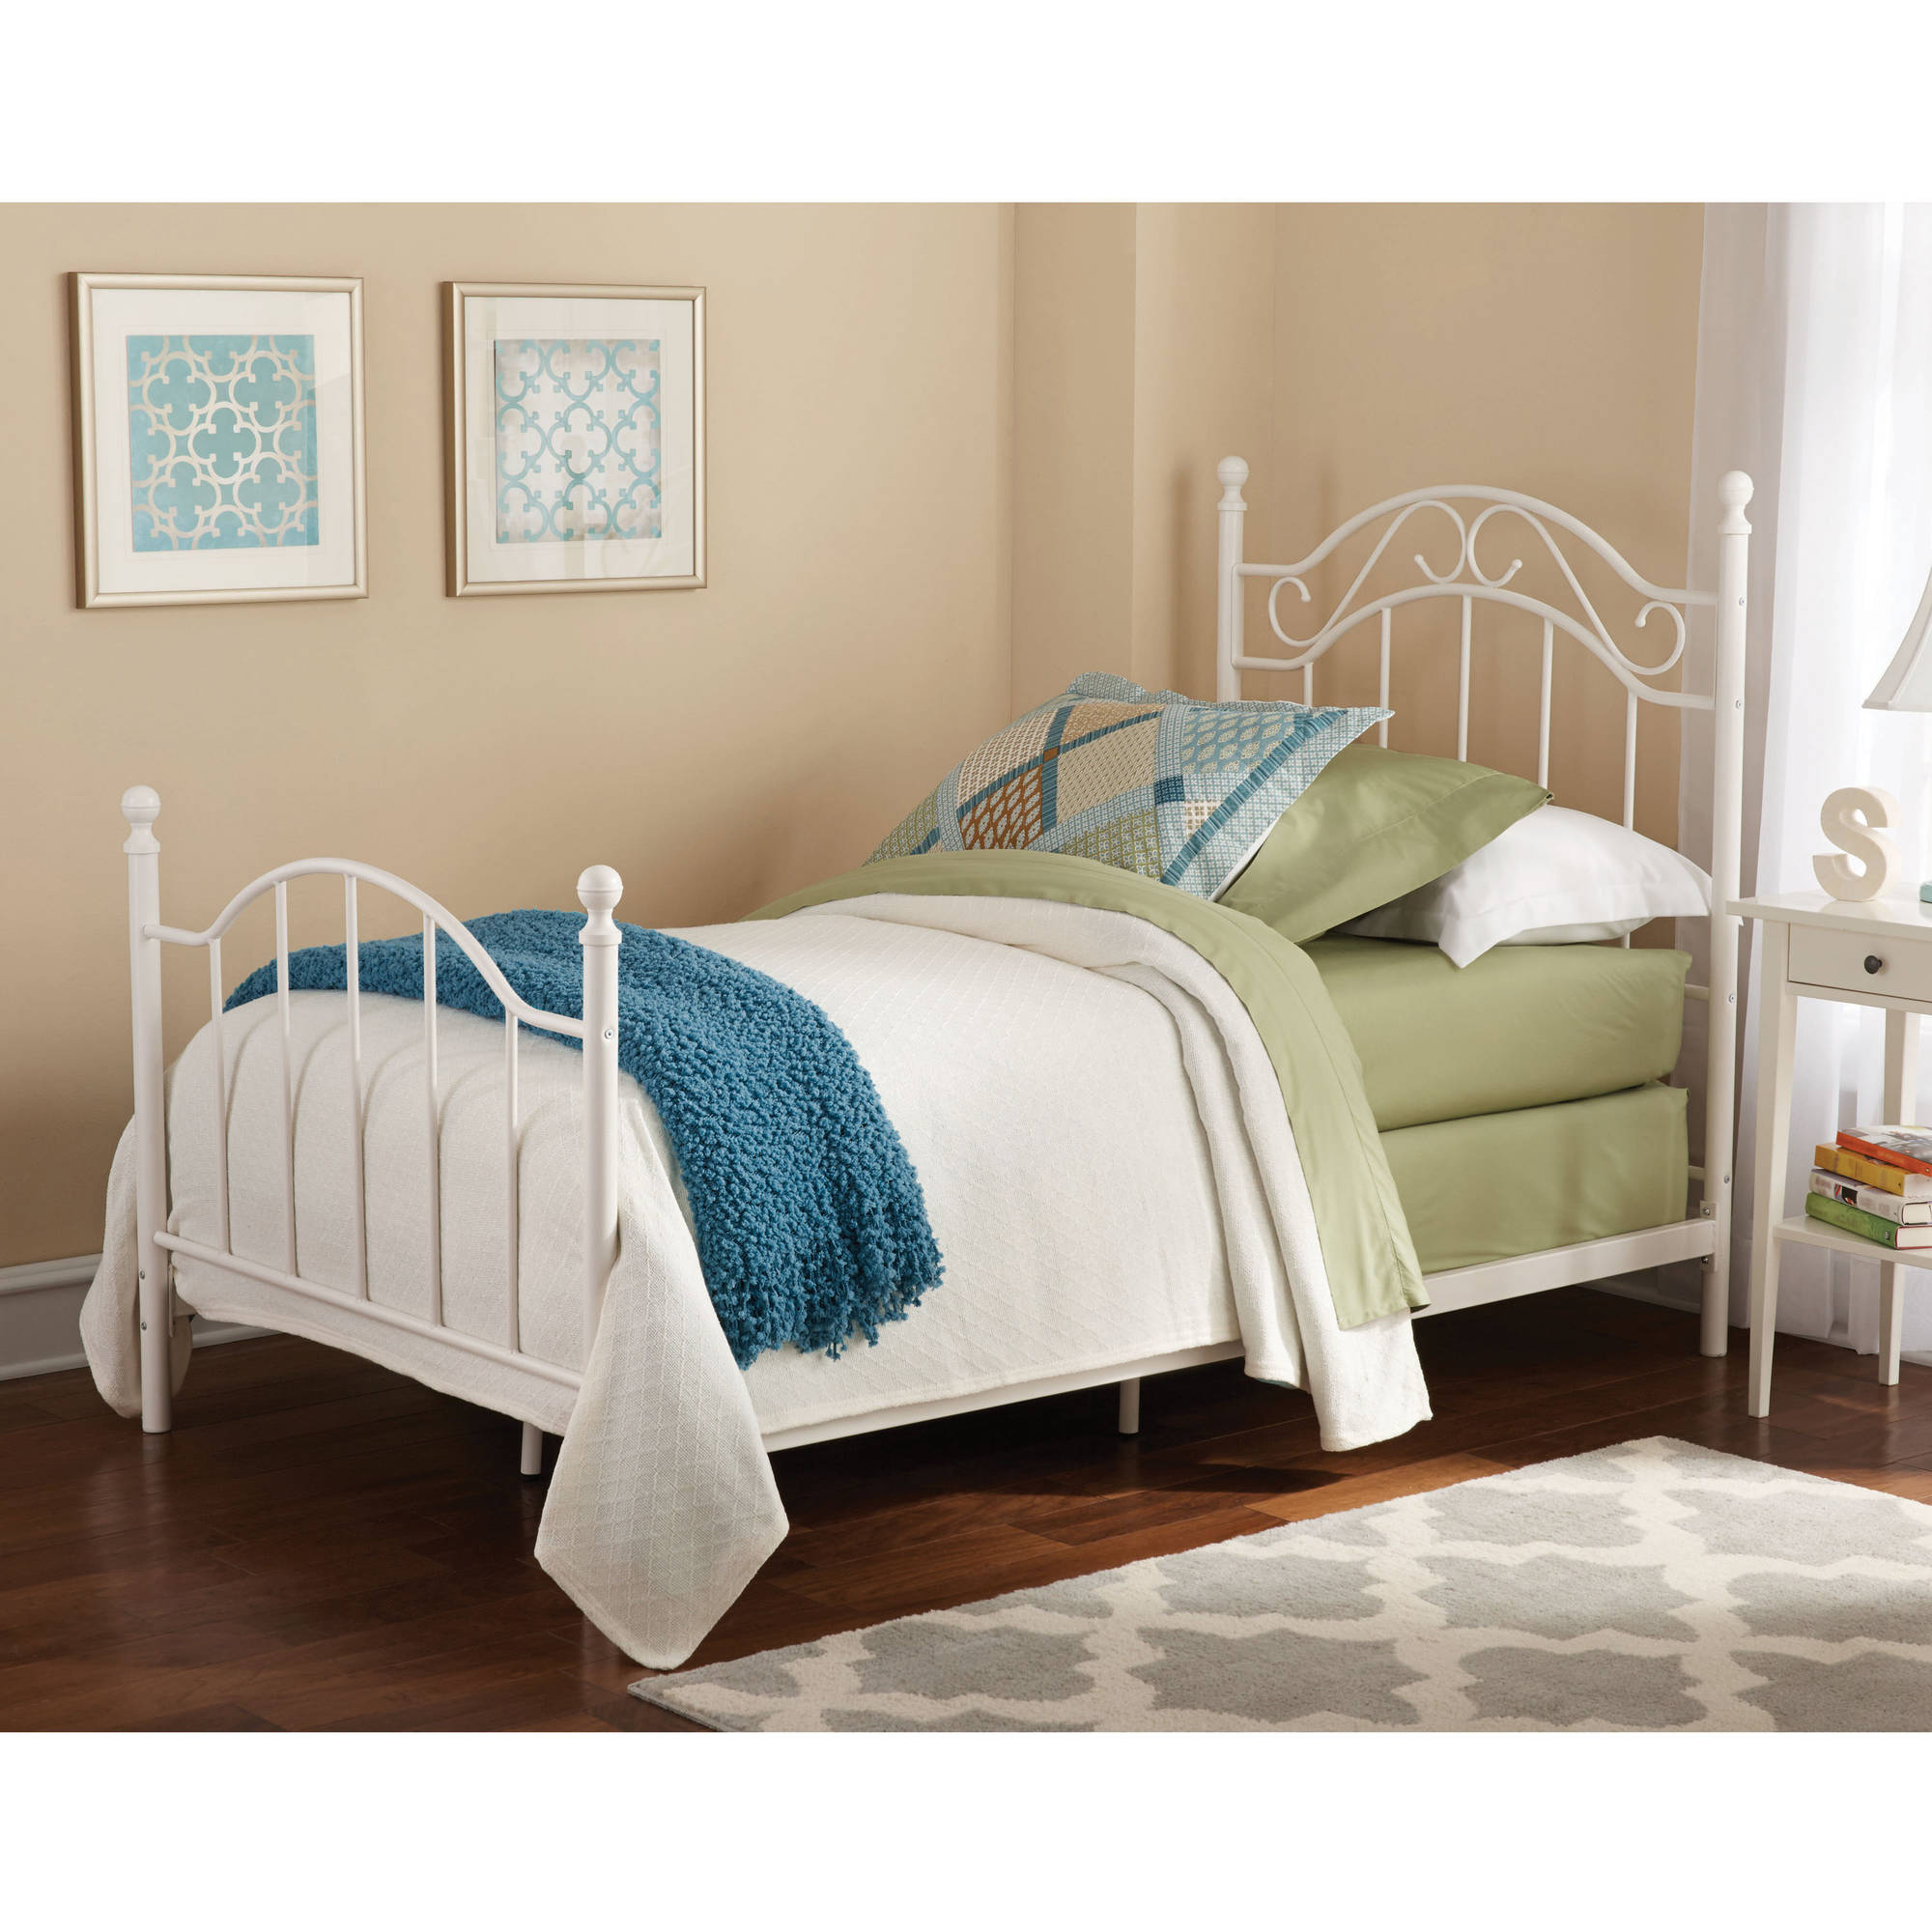 Exceptional Mainstays Twin Metal Bed, Multiple Colors